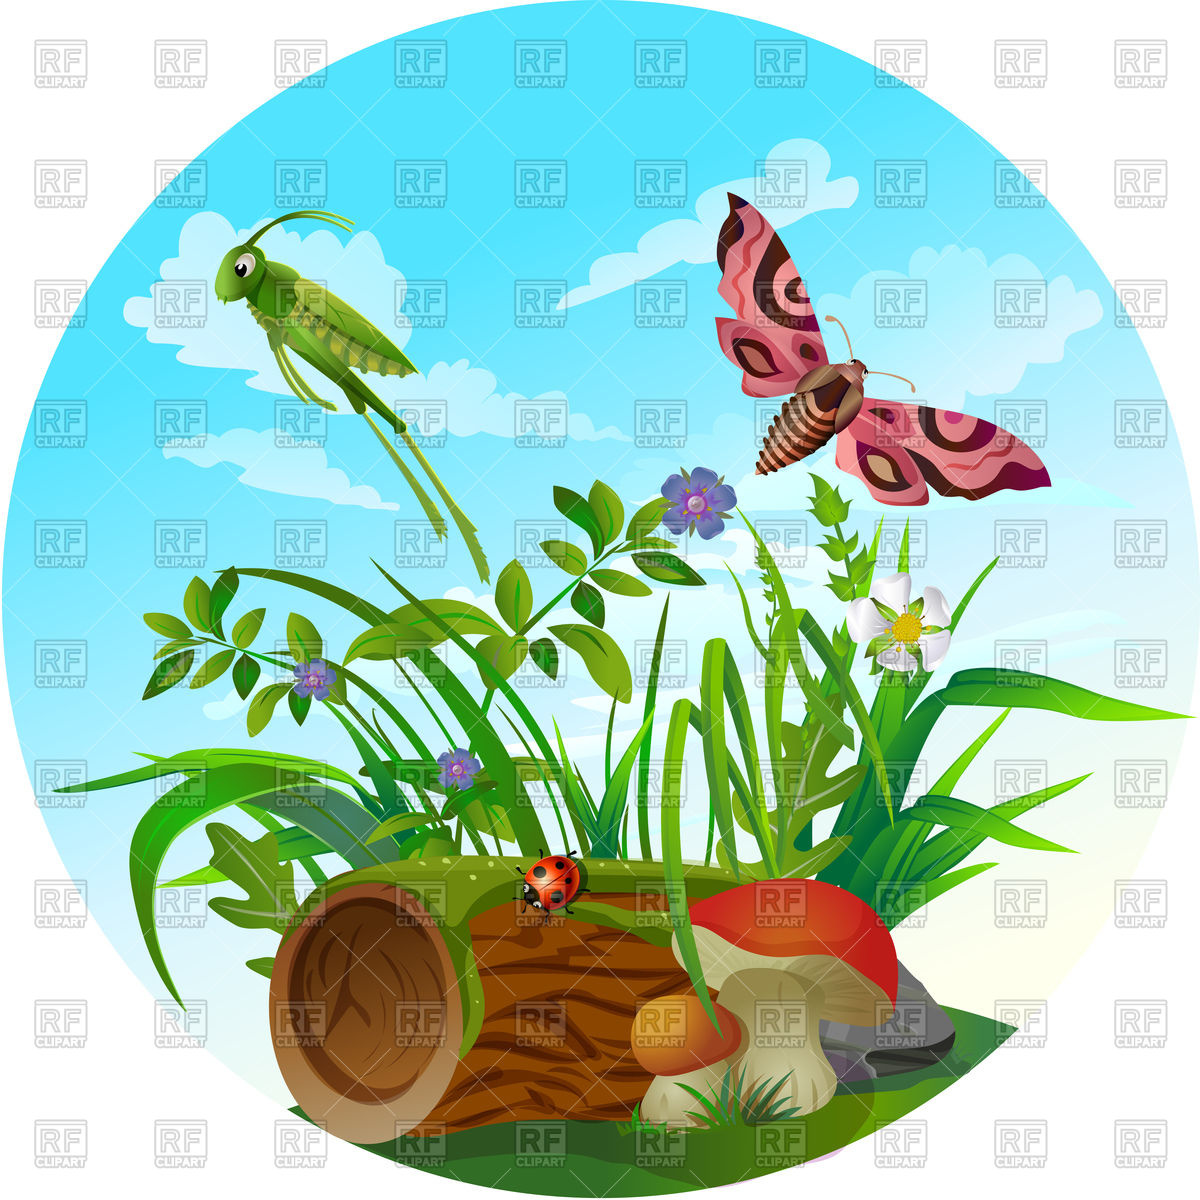 Nature clipart life, Nature life Transparent FREE for.